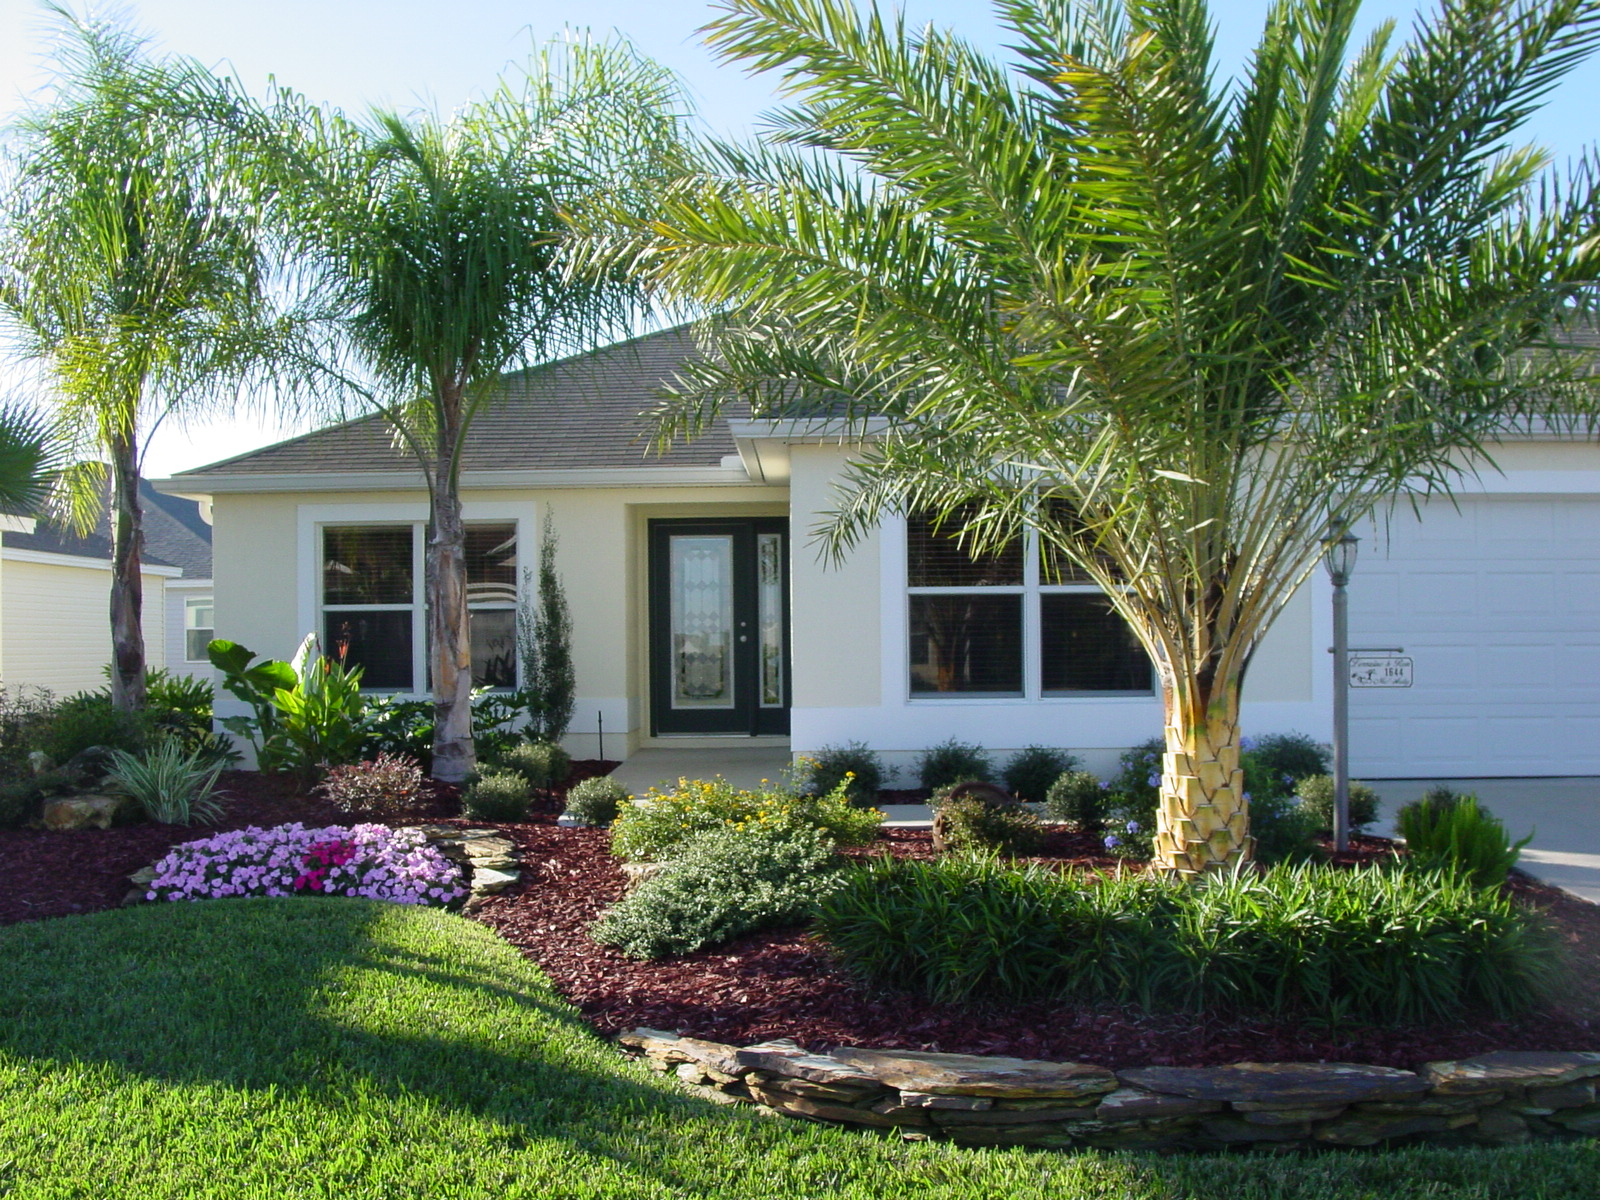 Florida garden landscape ideas photograph rons landscaping for Home landscaping ideas